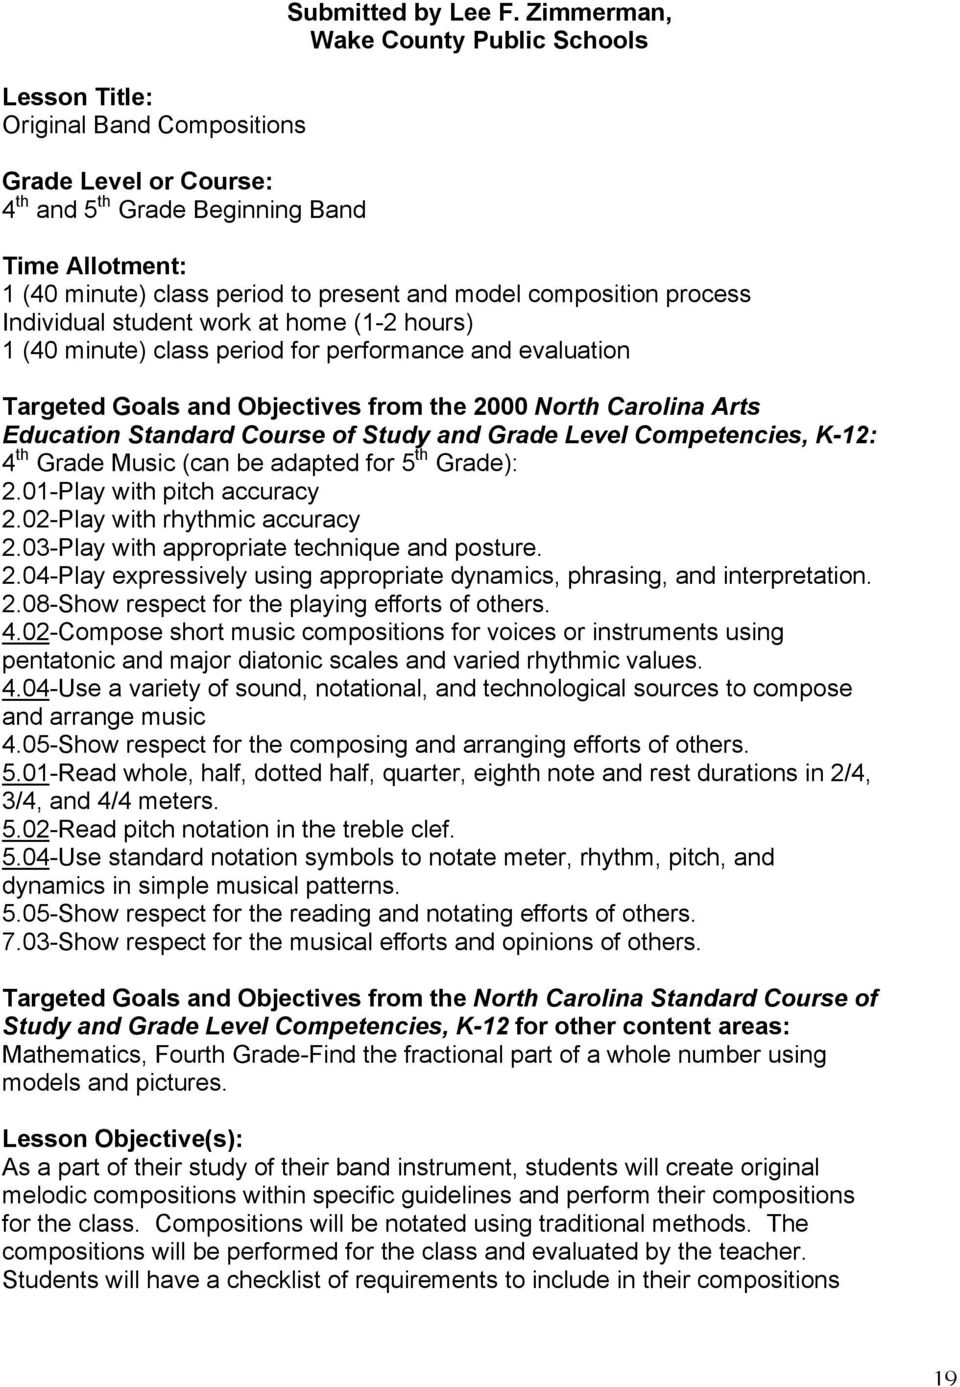 performance and evaluation Targeted Goals and Objectives from the 2000 North Carolina Arts Education Standard Course of Study and Grade Level Competencies, K-12: 4 th Grade Music (can be adapted for